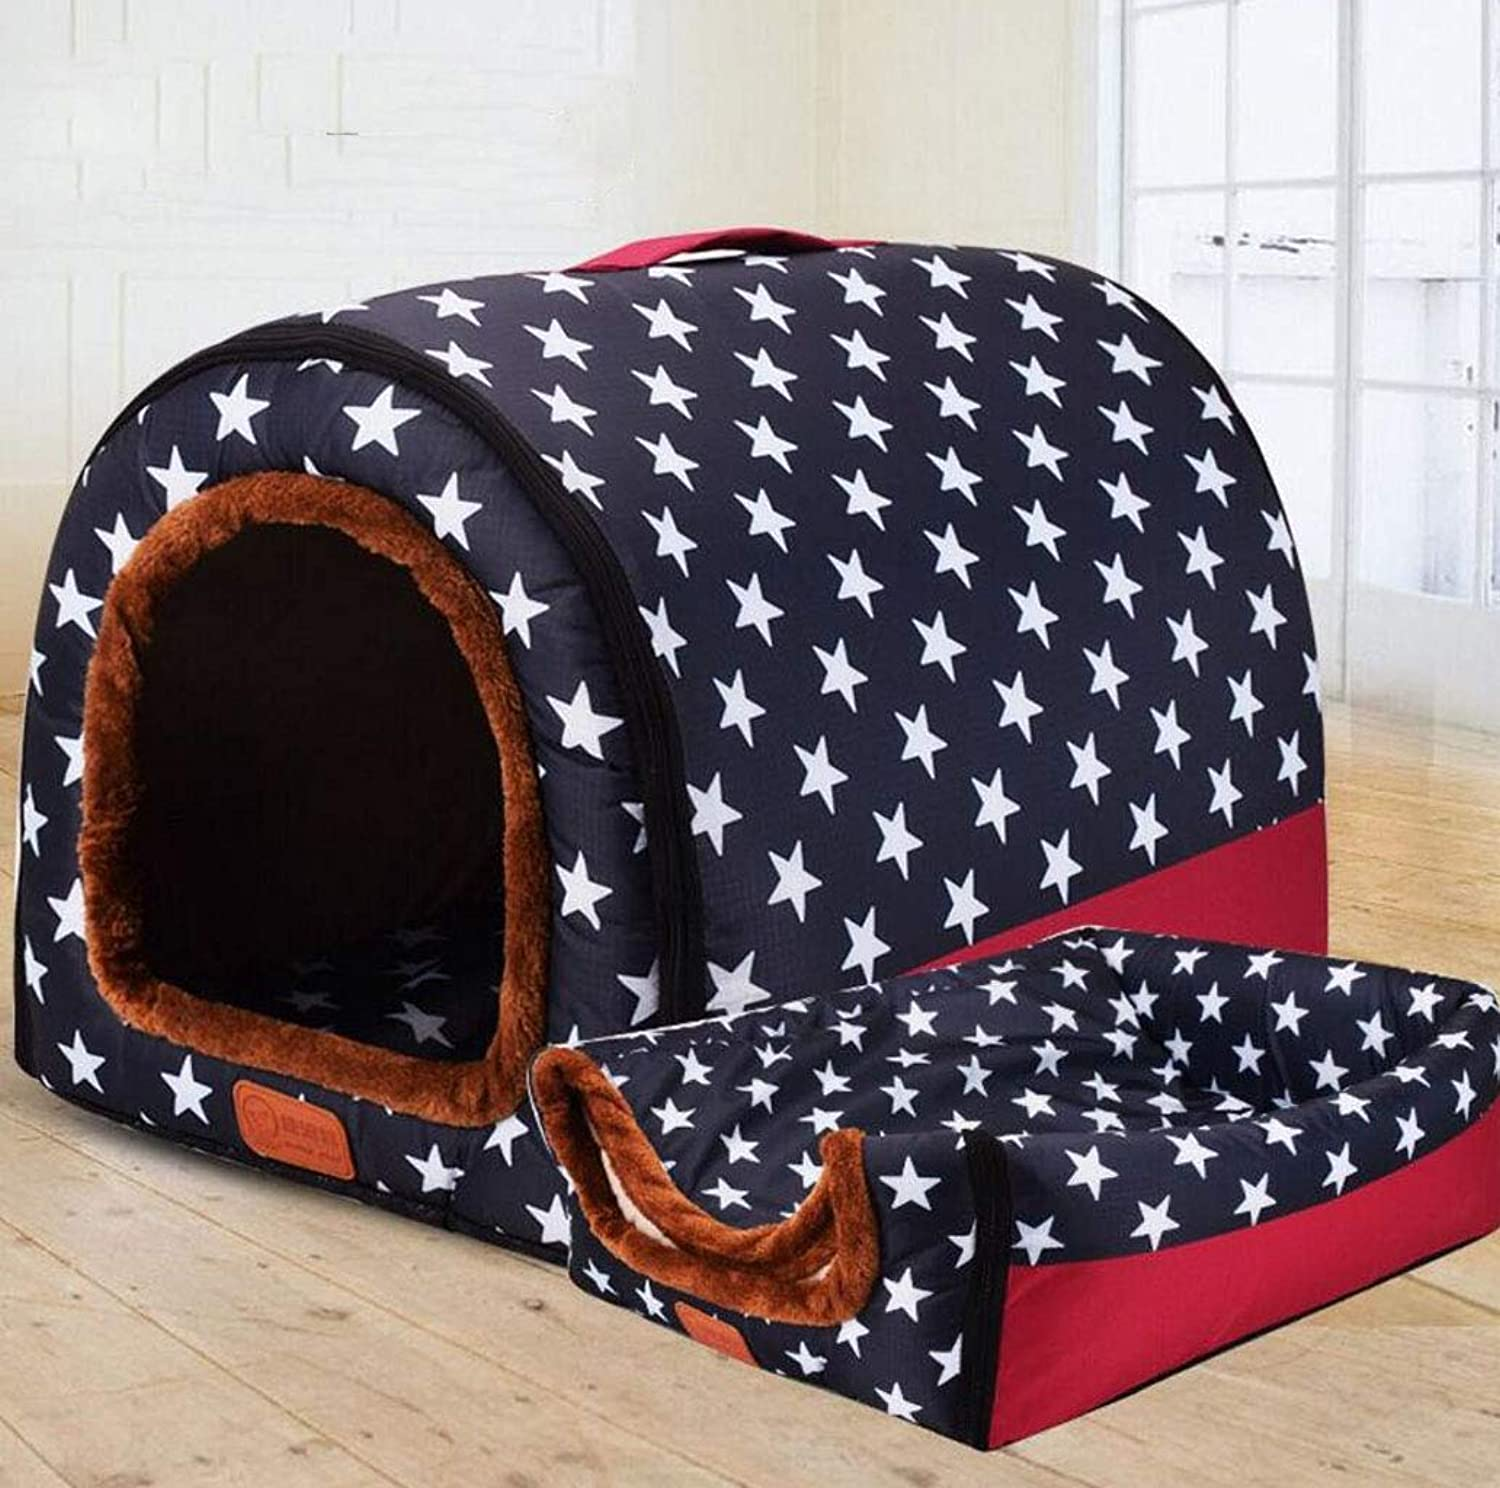 Removable and Washable arc House Dog Kennel pet House cat House pet nest Teddy golden Retriever Kennel (color   bluee, Size   M)